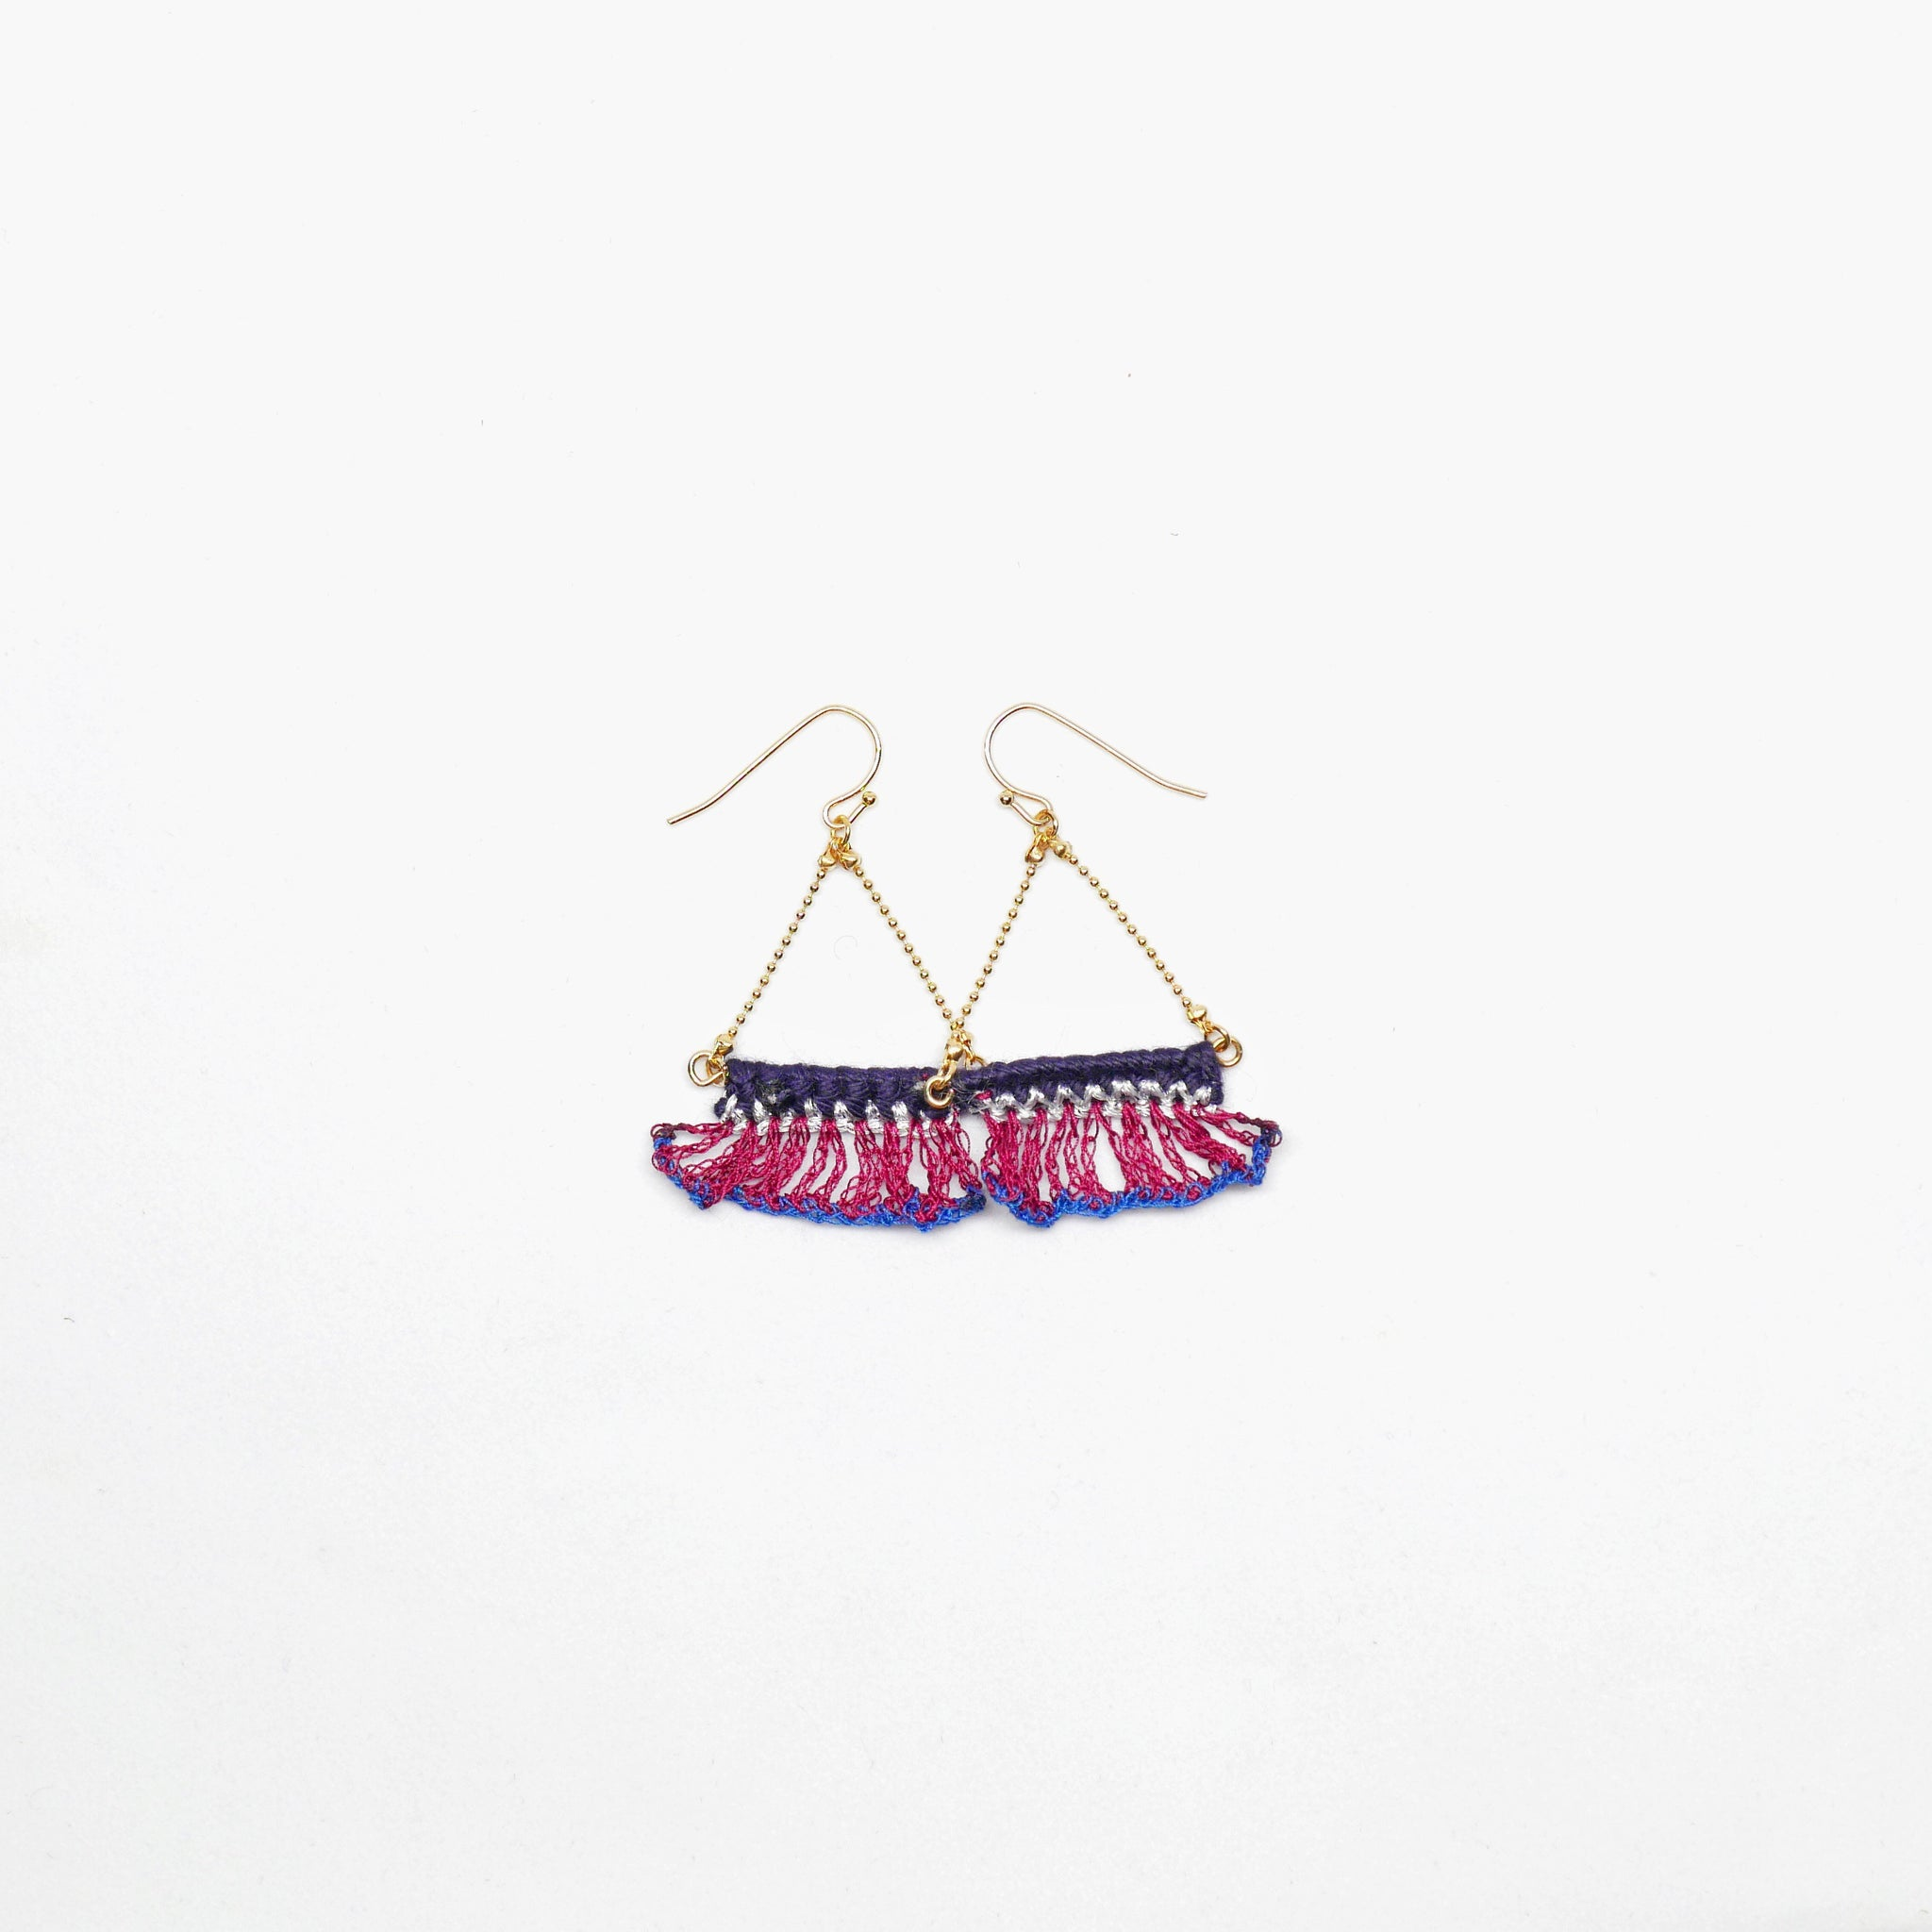 Knitted Fan Earrings (purple/ dark blue)